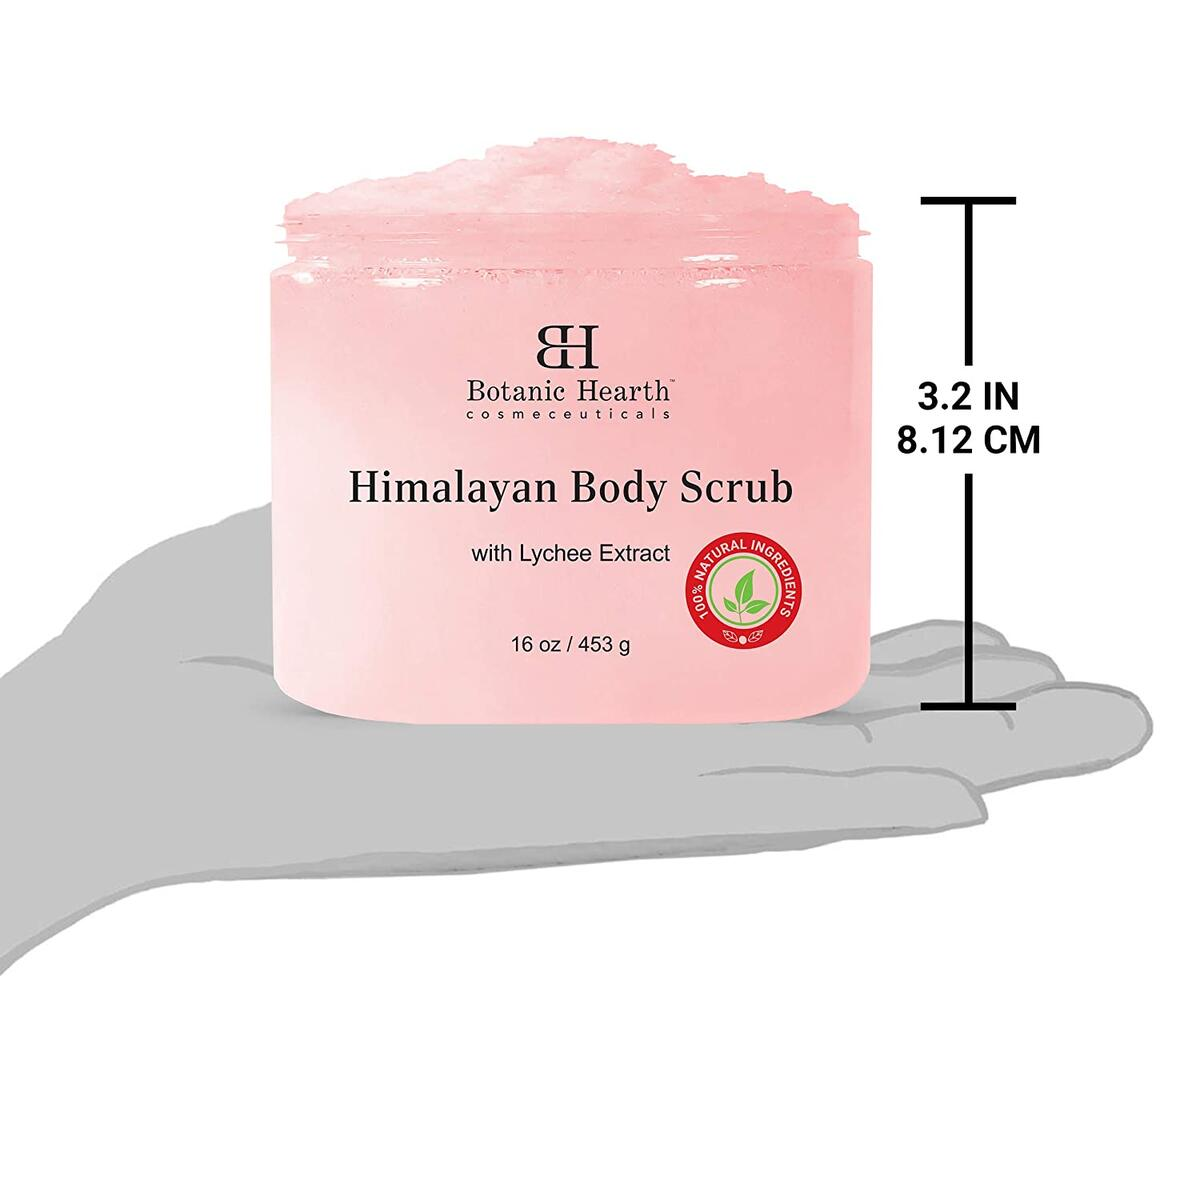 Himalayan Body Scrub - 100% Natural Exfoliating Salt Scrub - Made with Authentic Himalayan Salt - for Hydrated & Toned Skin, Fights Acne, Great Gift Item - 16 oz